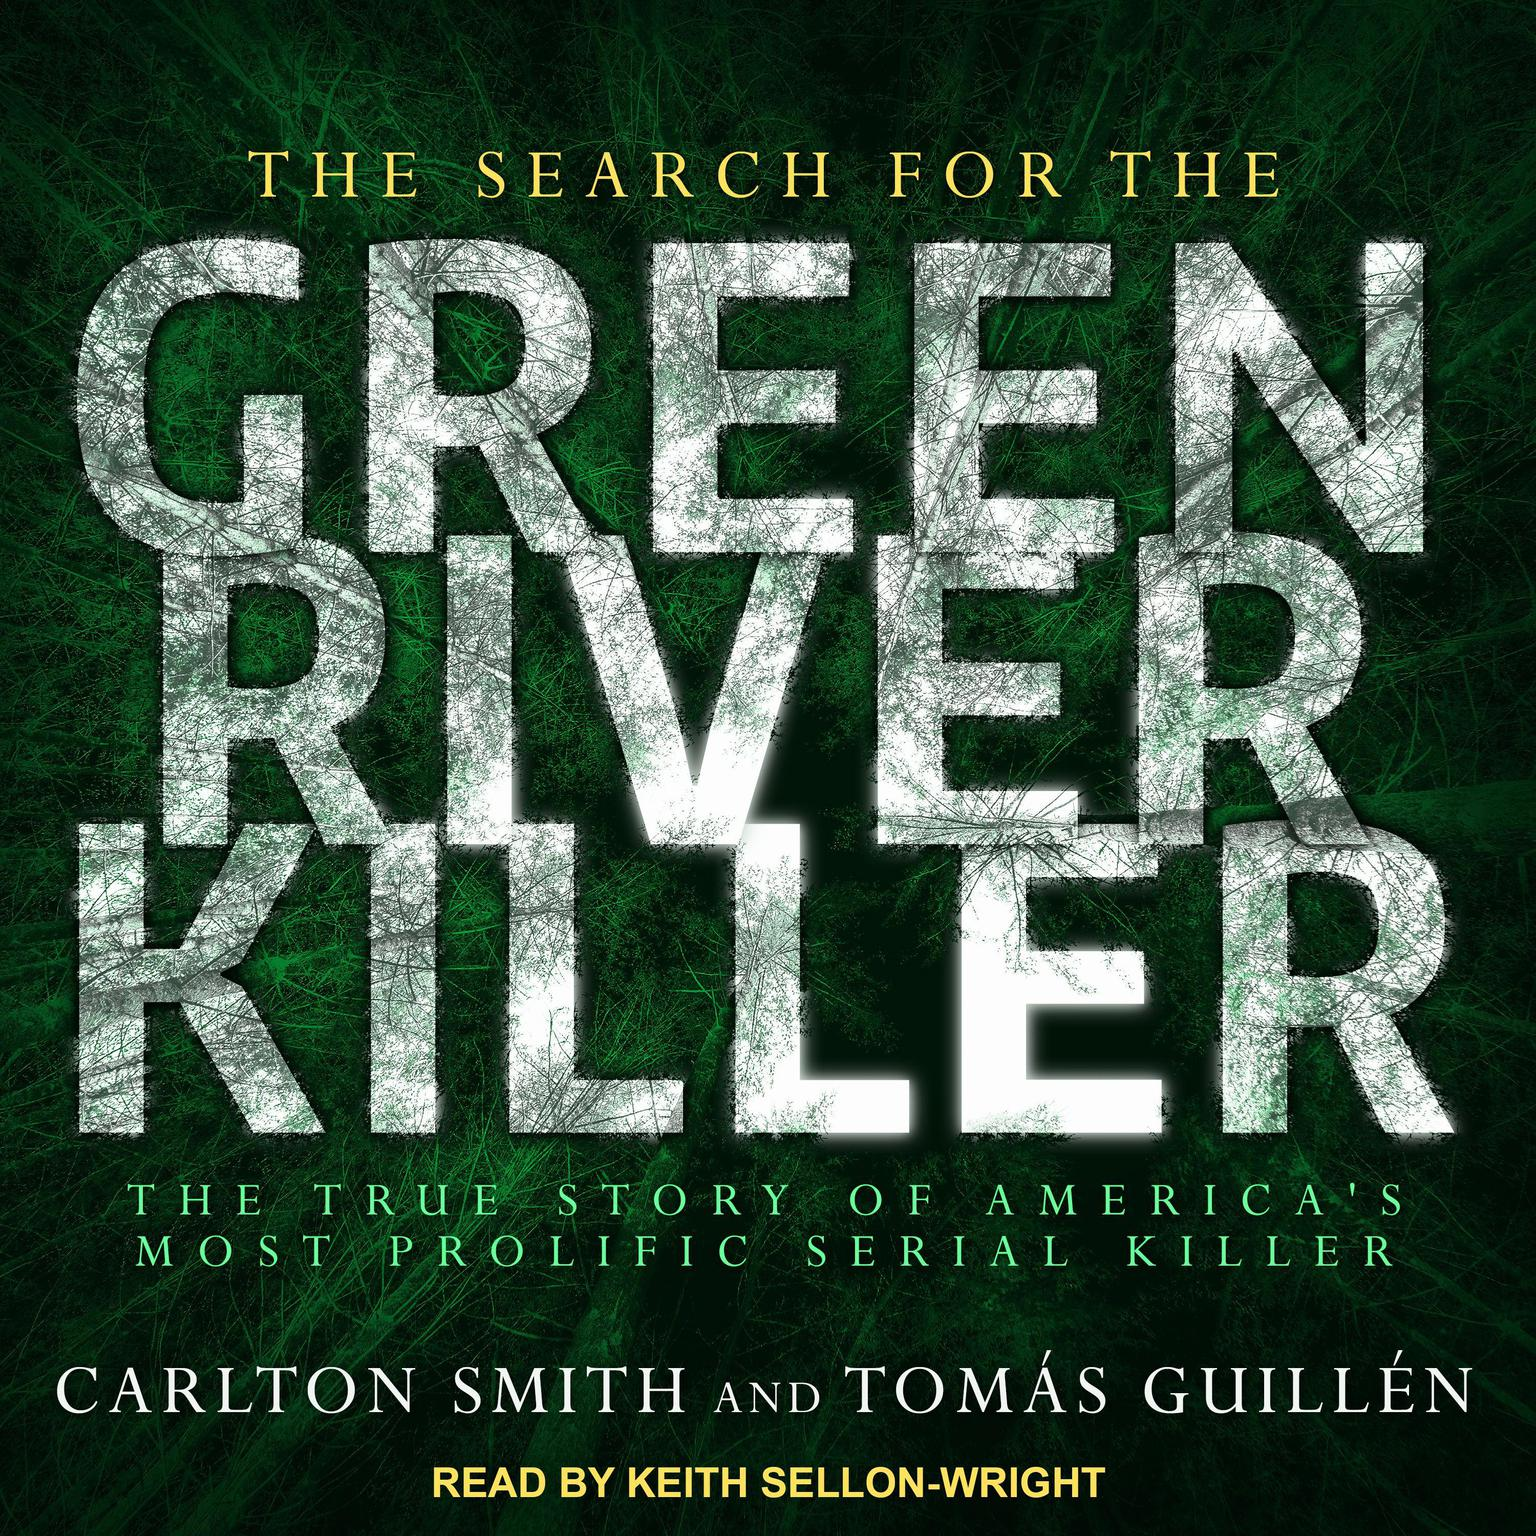 Printable The Search for the Green River Killer: The True Story of America's Most Prolific Serial Killer Audiobook Cover Art